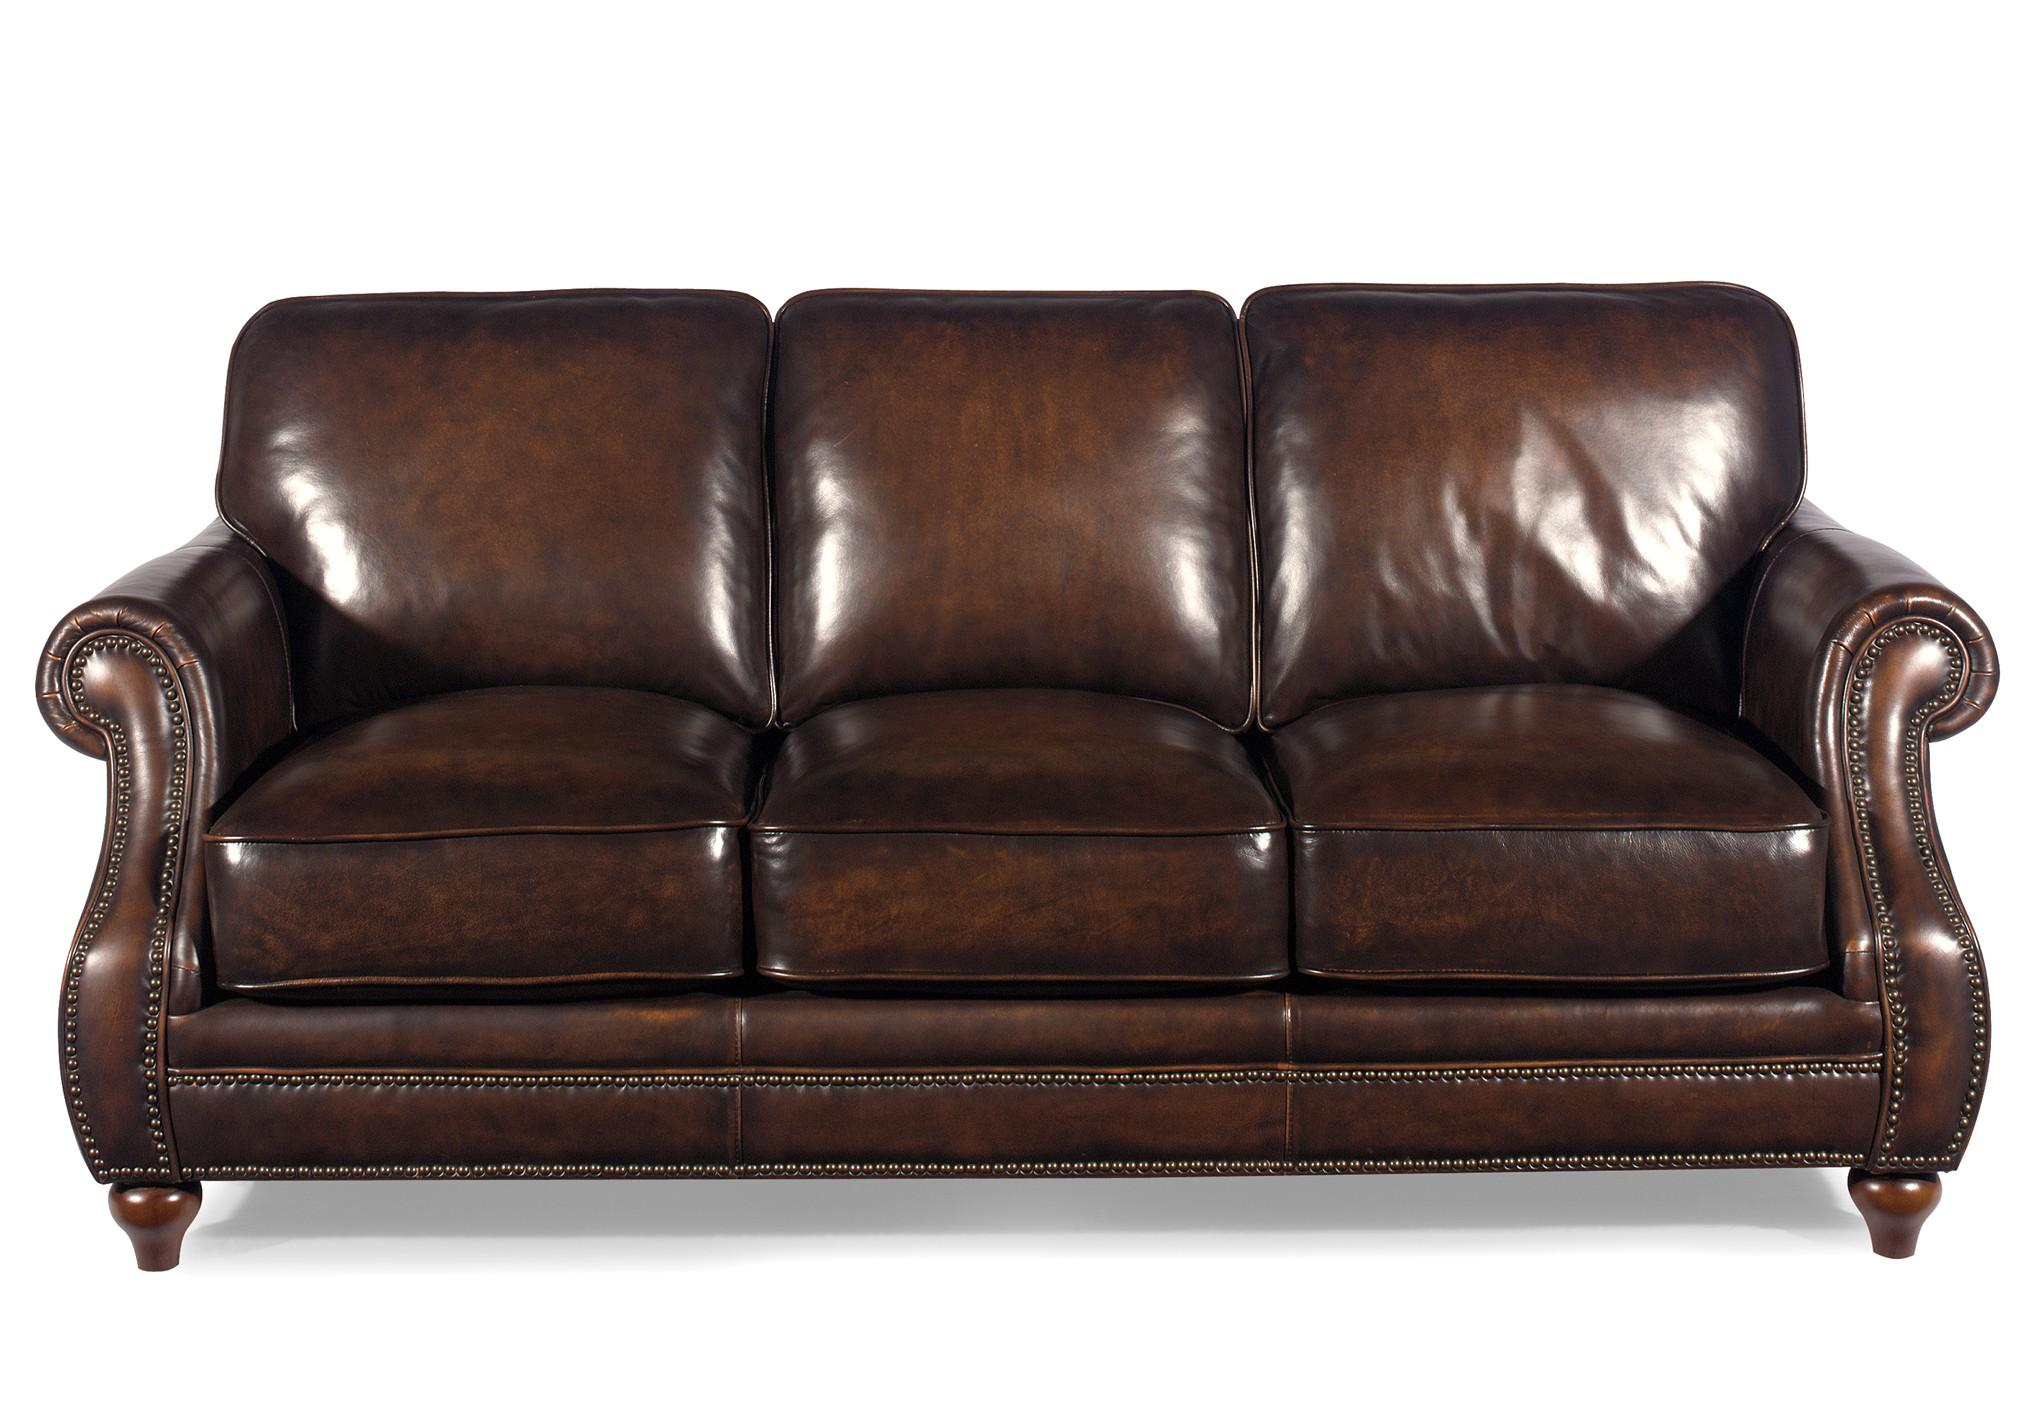 traditional leather sectional sofas twilight sleeper sofa dwr with rolled arms and nailhead trim